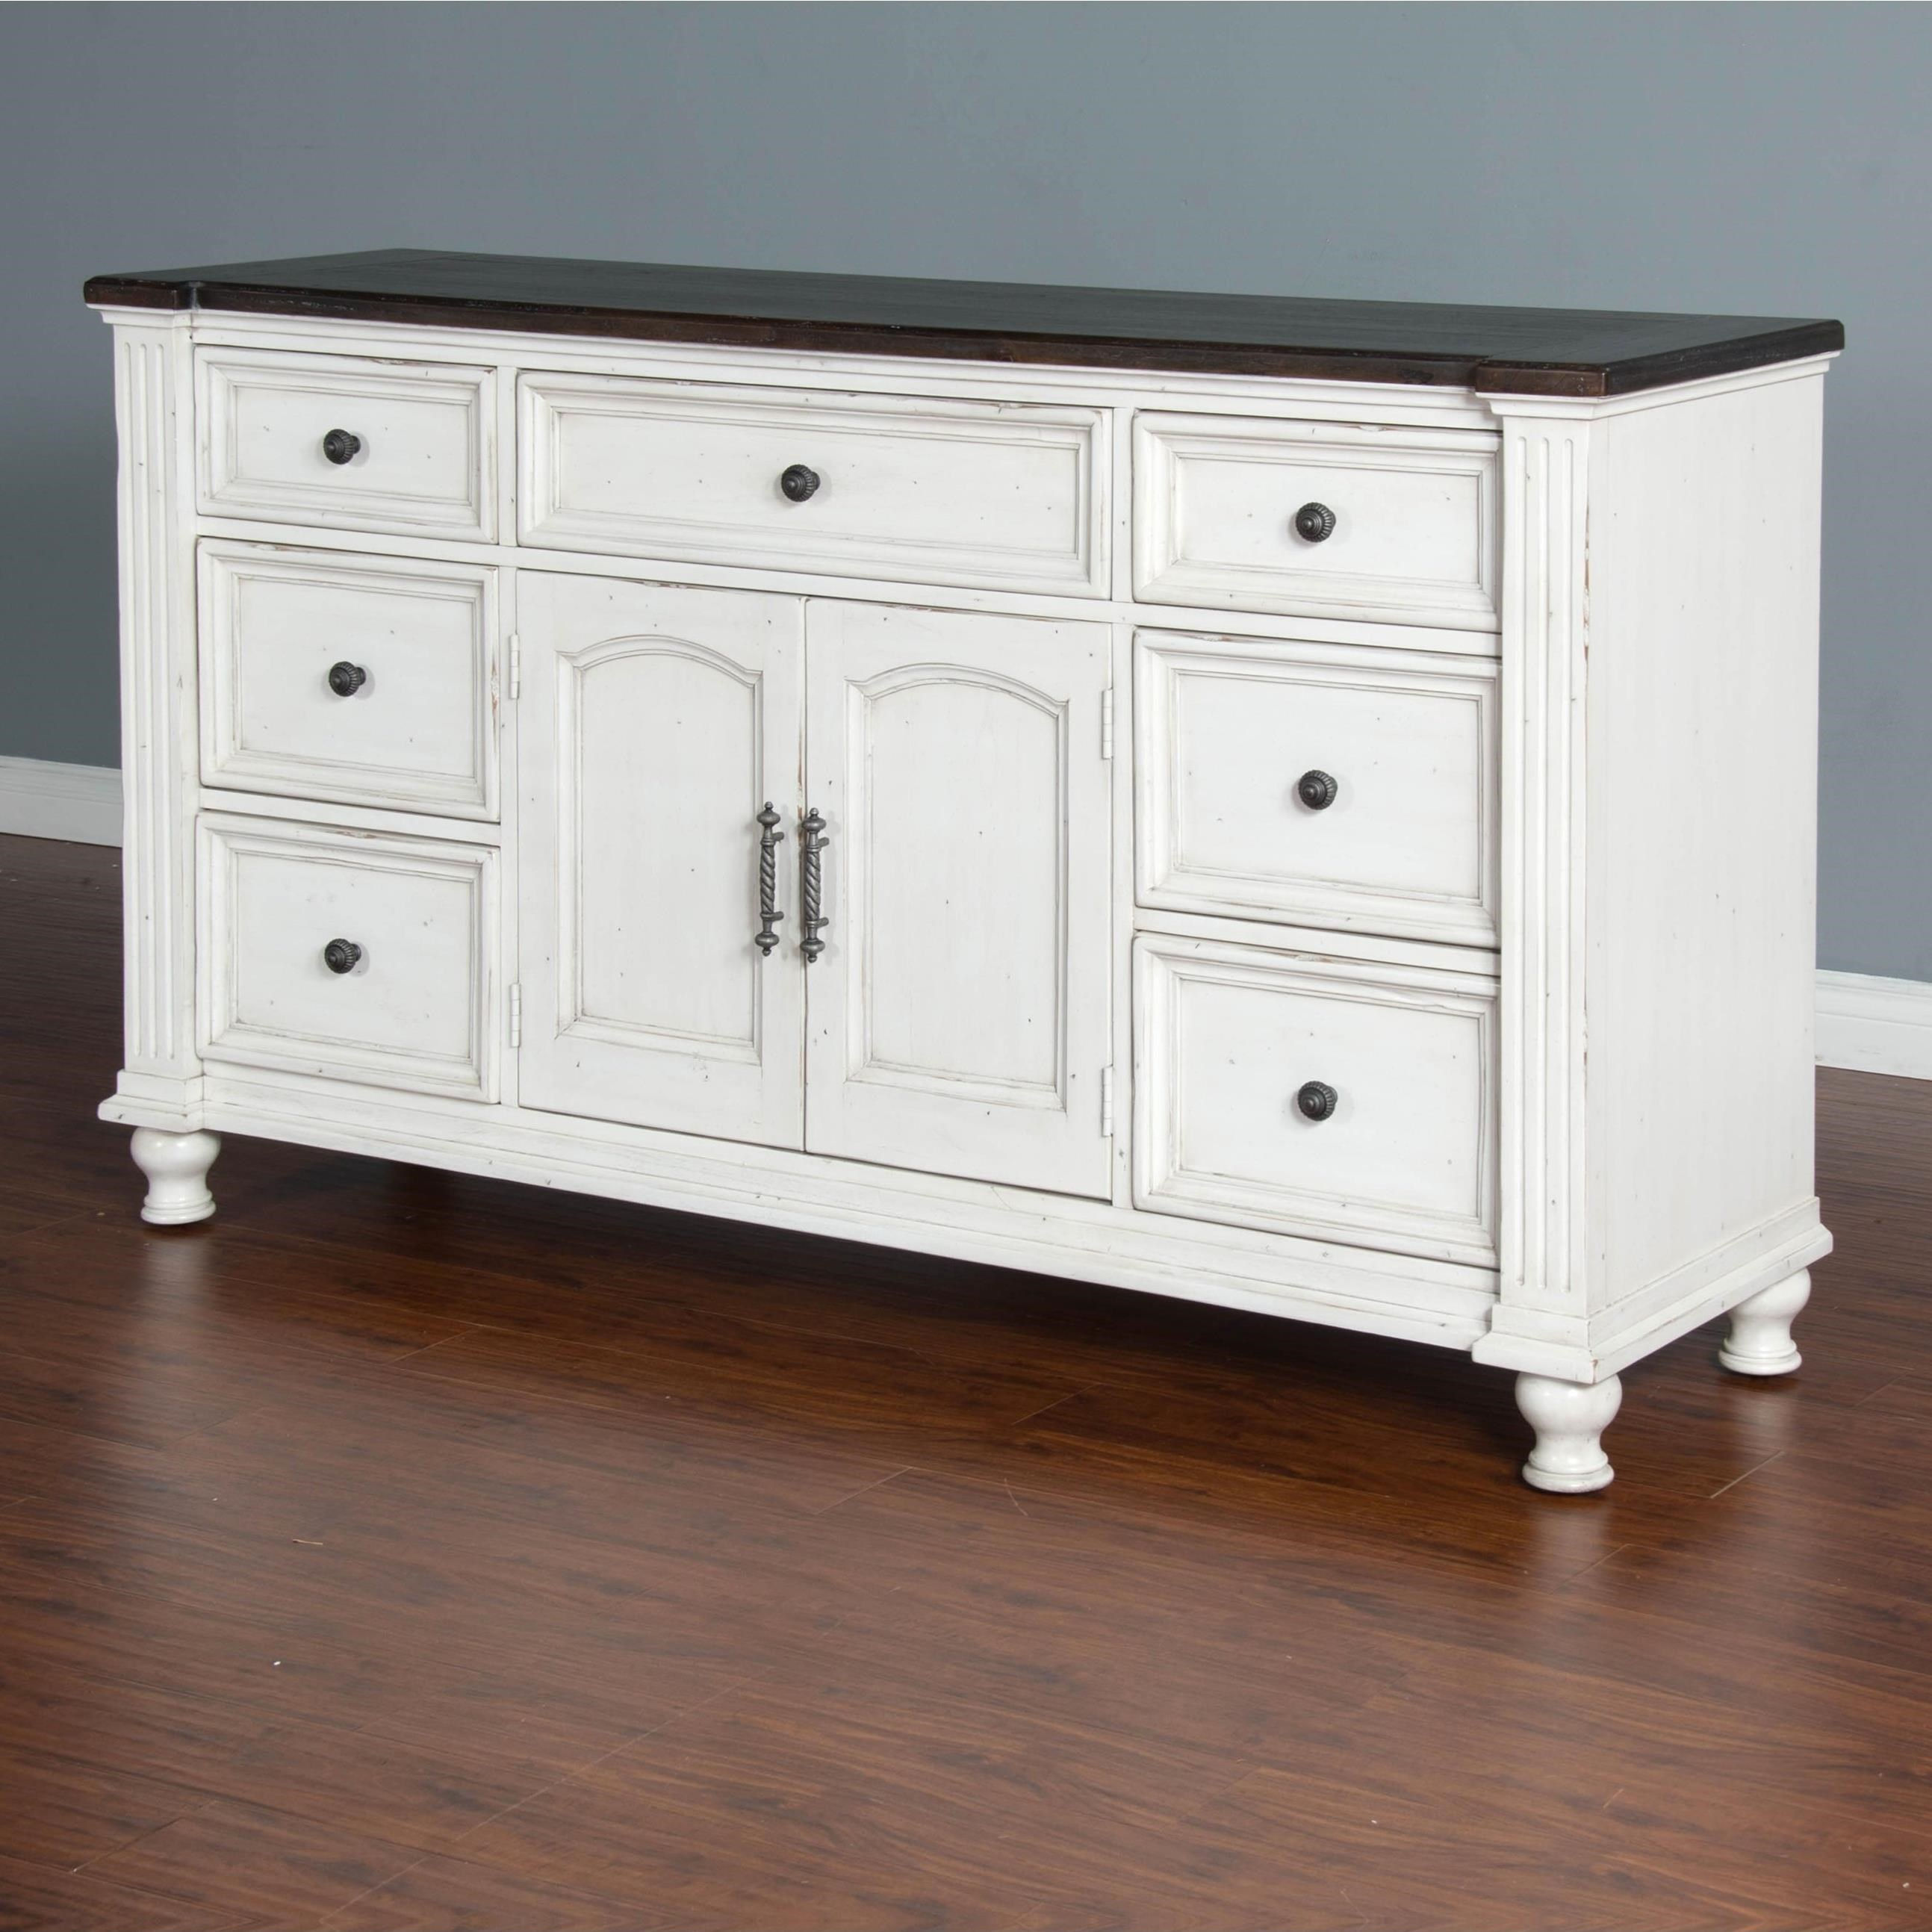 Carriage House Dresser at Bennett's Furniture and Mattresses